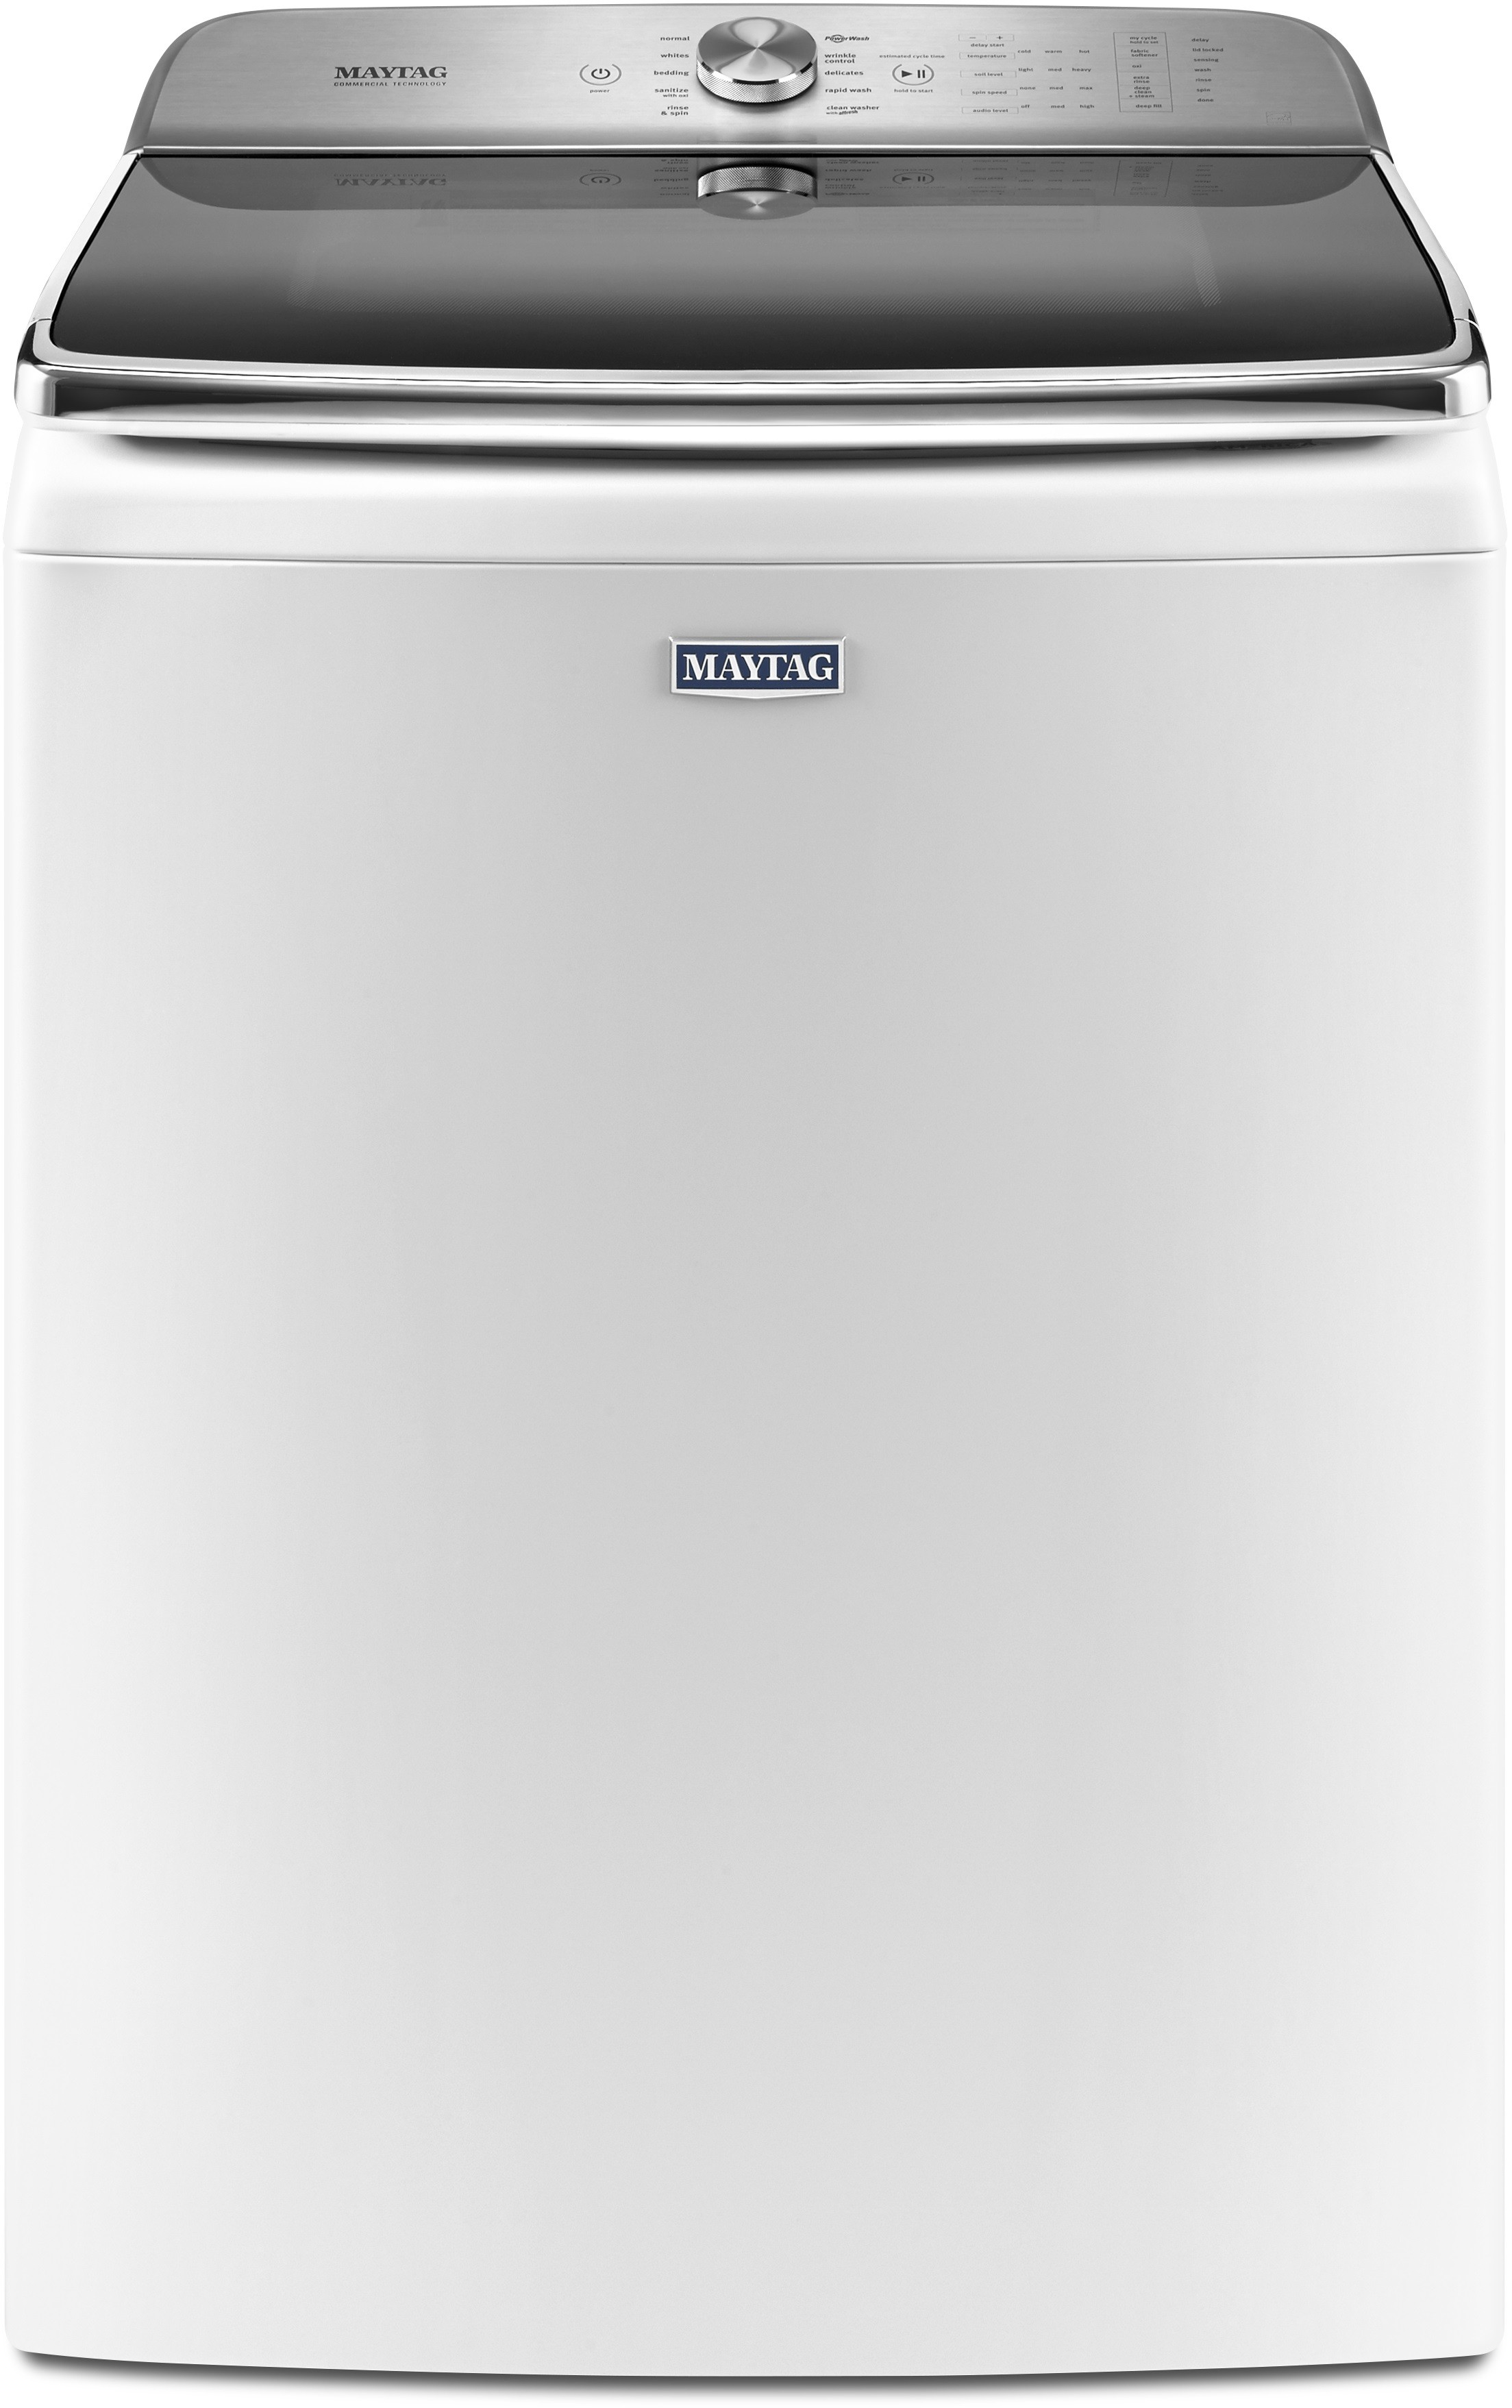 Maytag mvwb955fw 30 inch top load washer with 6 2 cu ft capacity 10 wash cycle selections - Maytag whirlpool ...